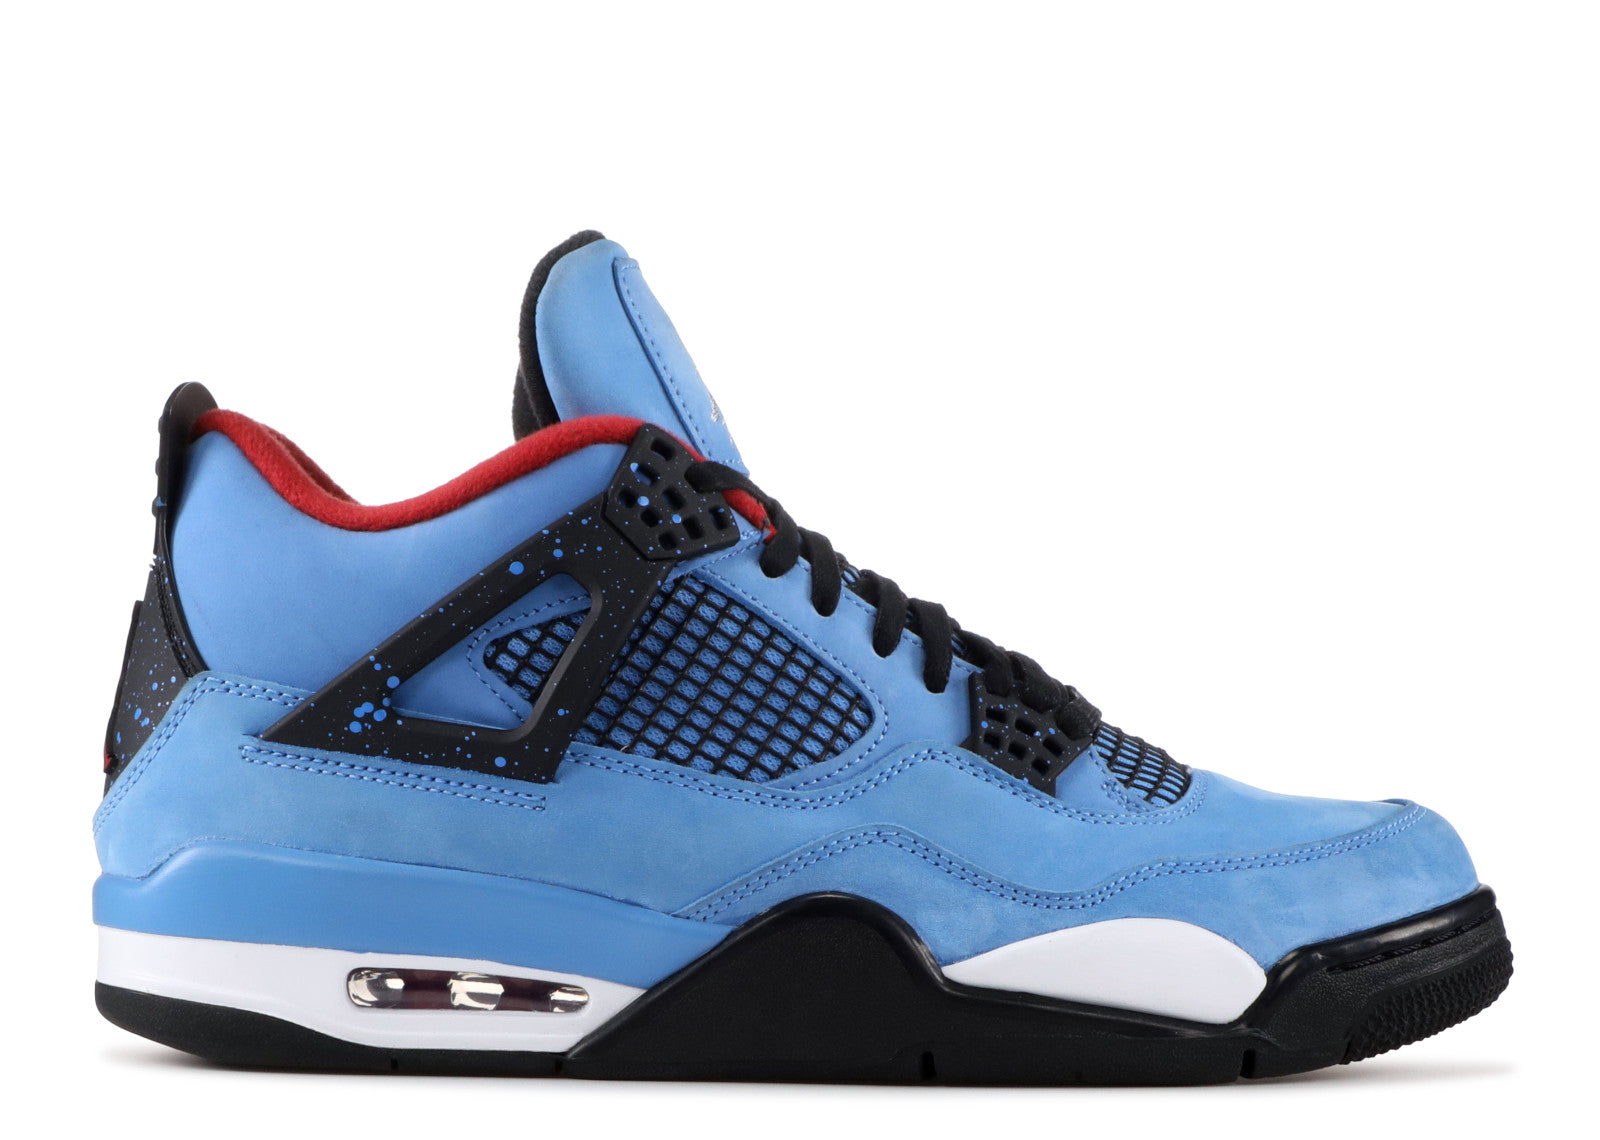 169aff84b20d New Air Jordan 4 Retro